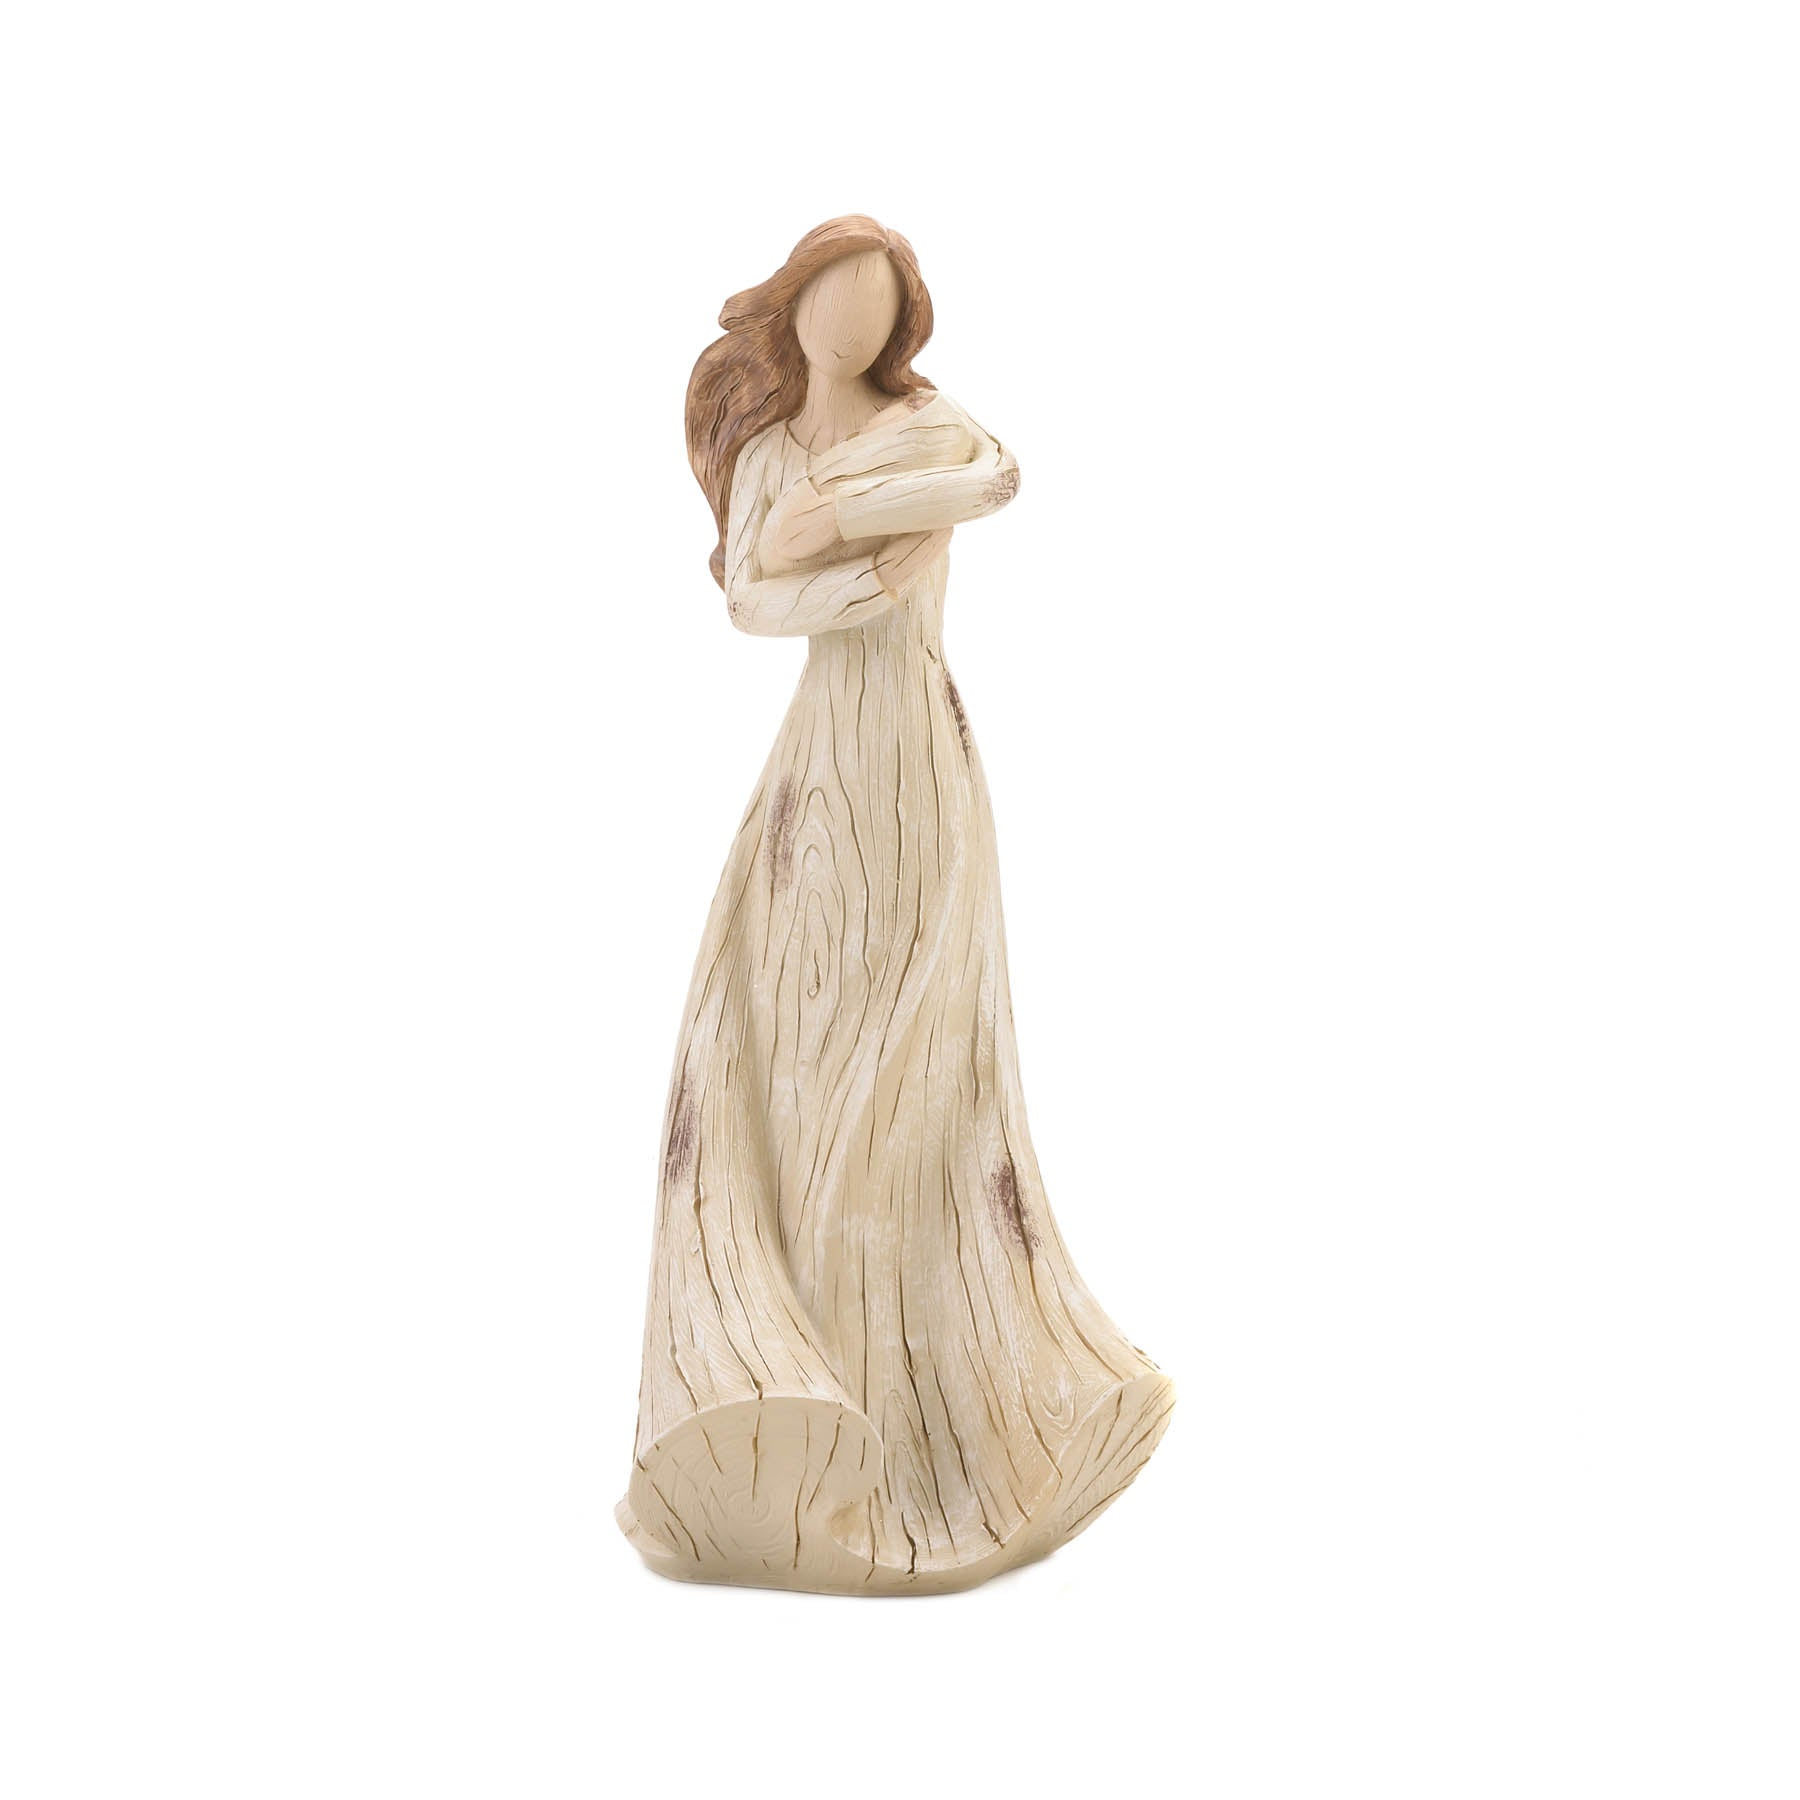 Accent Plus Mother And Baby Figurine - 10018854